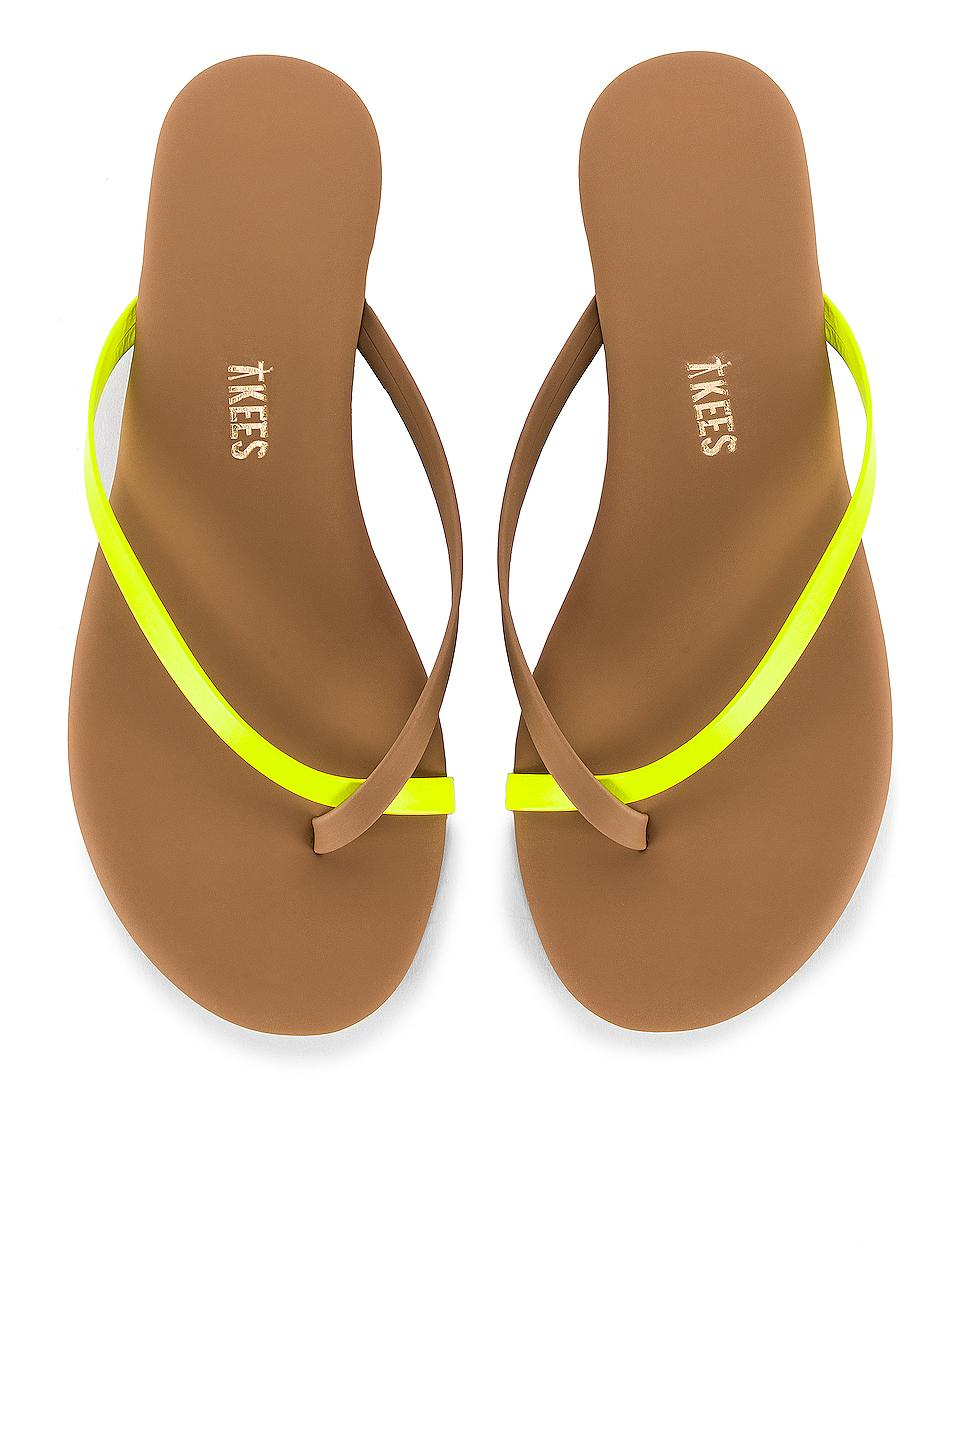 Tkees Riley Neon Flip Flop In Yellow - Save 10 - Lyst-4485